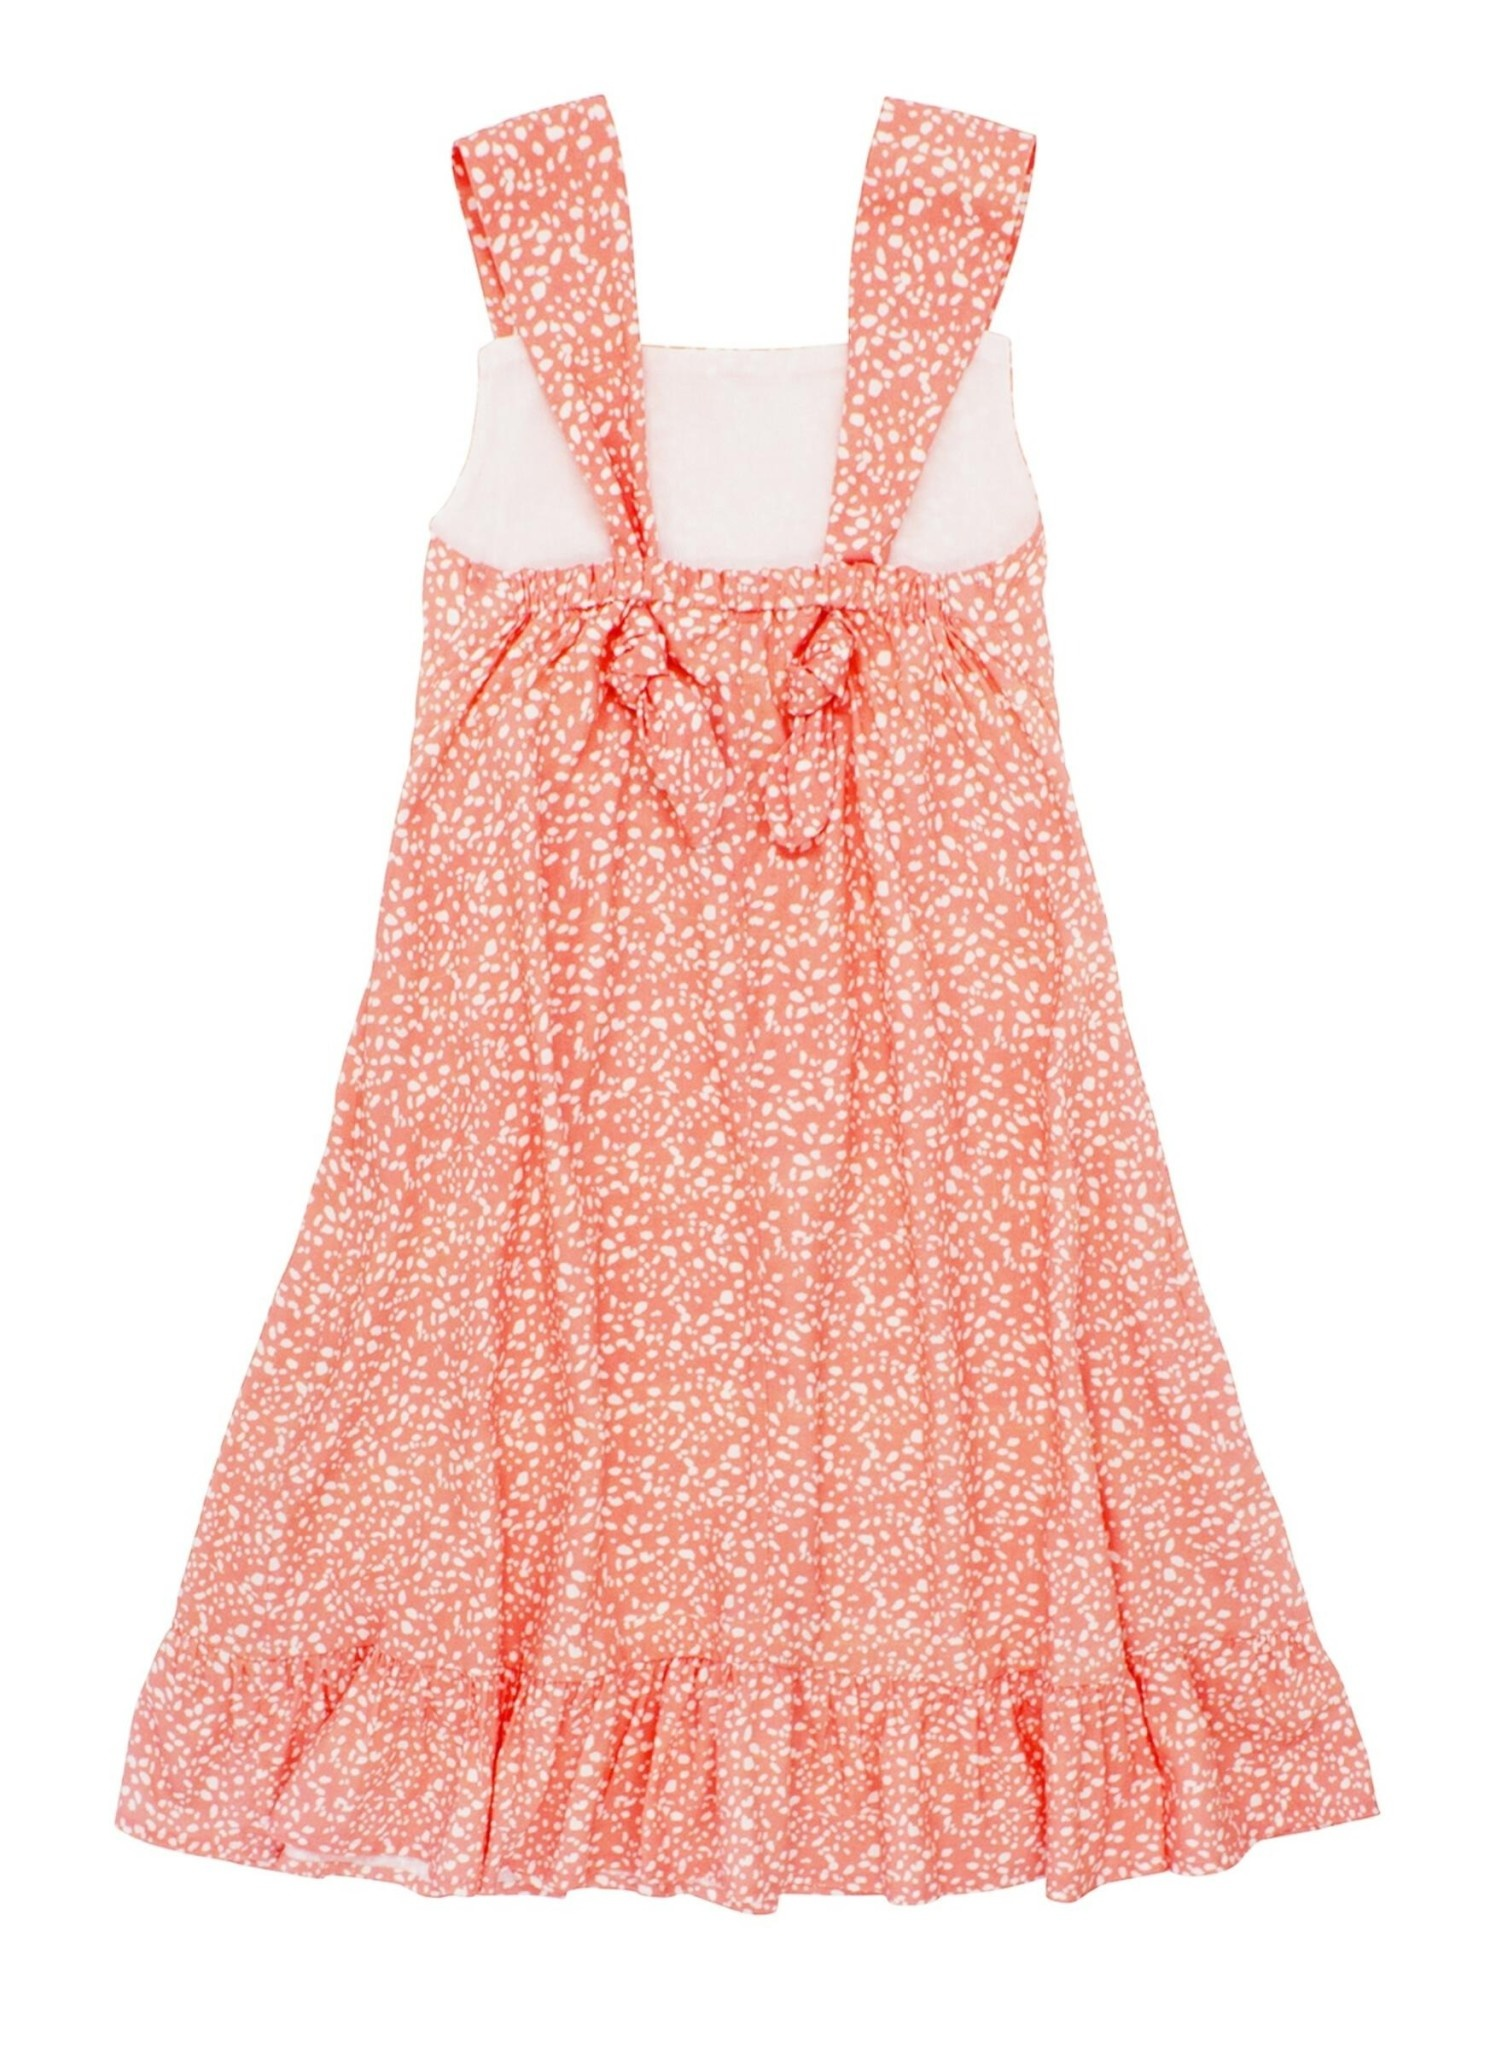 Feather 4 Arrow Sunset Vibes Dress- Coral Crush